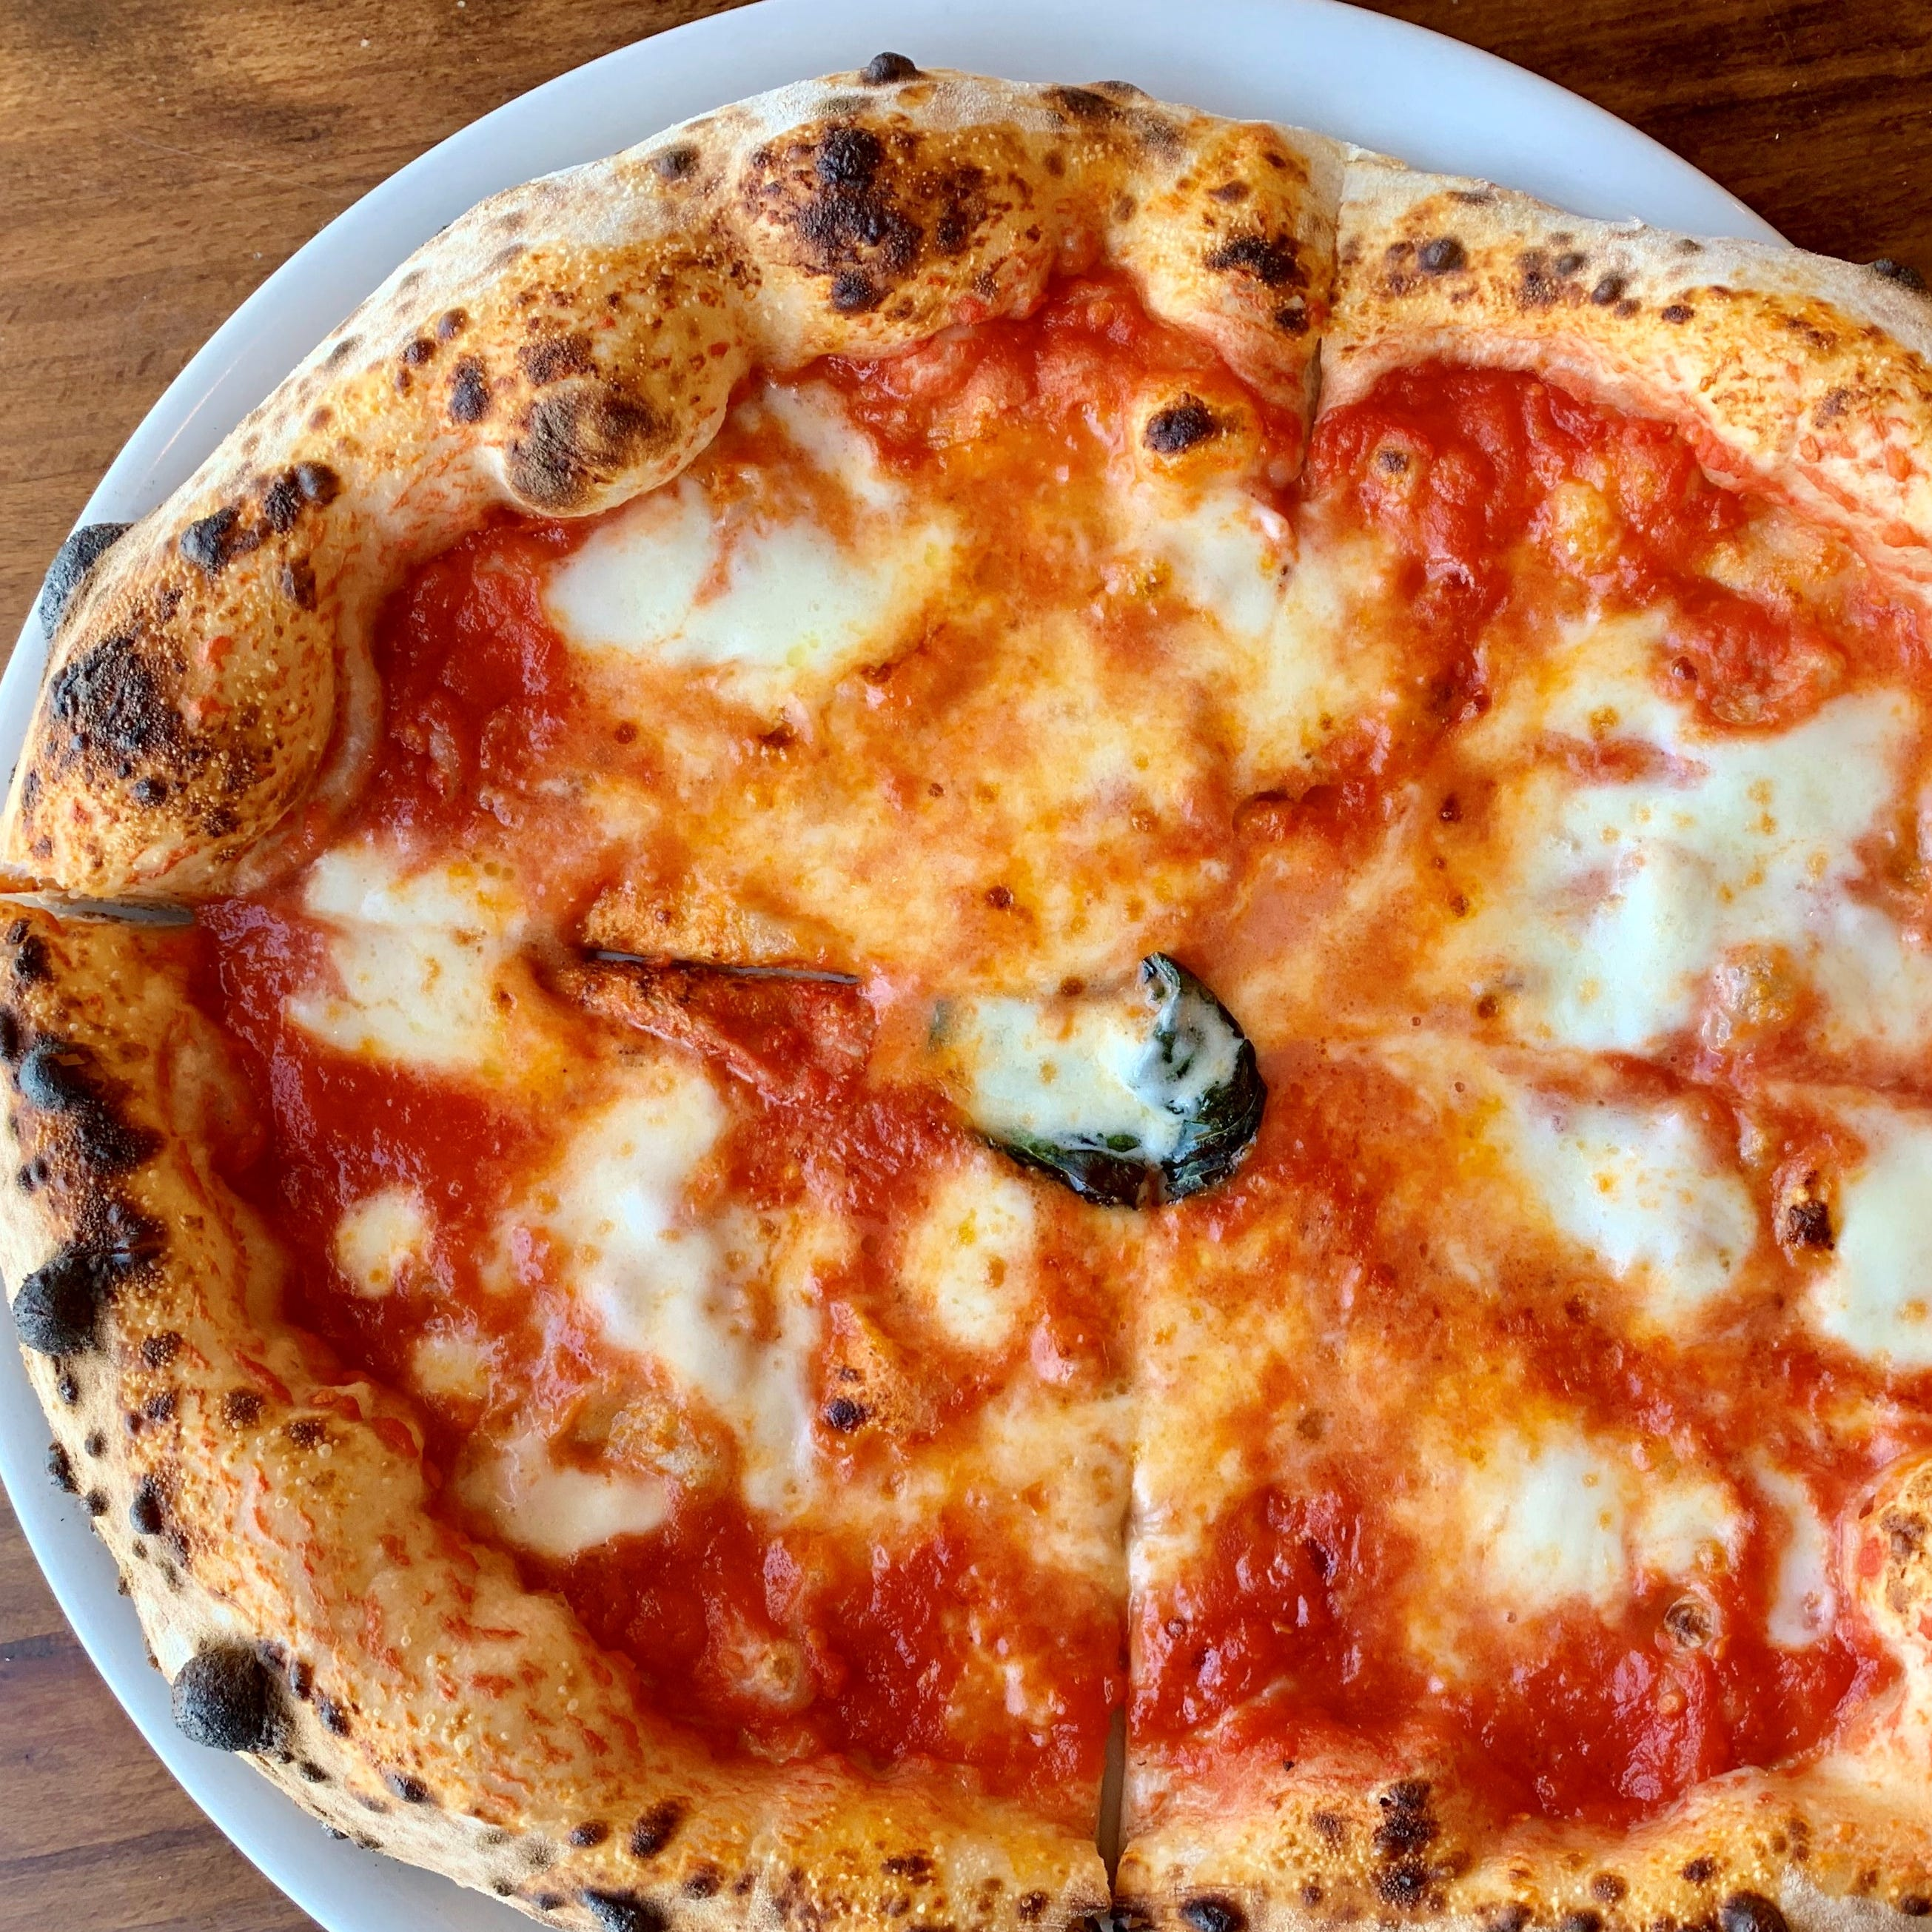 Restaurant review: Mangia e Bevi in Cocoa Beach brings true Neapolitan pizza to Brevard